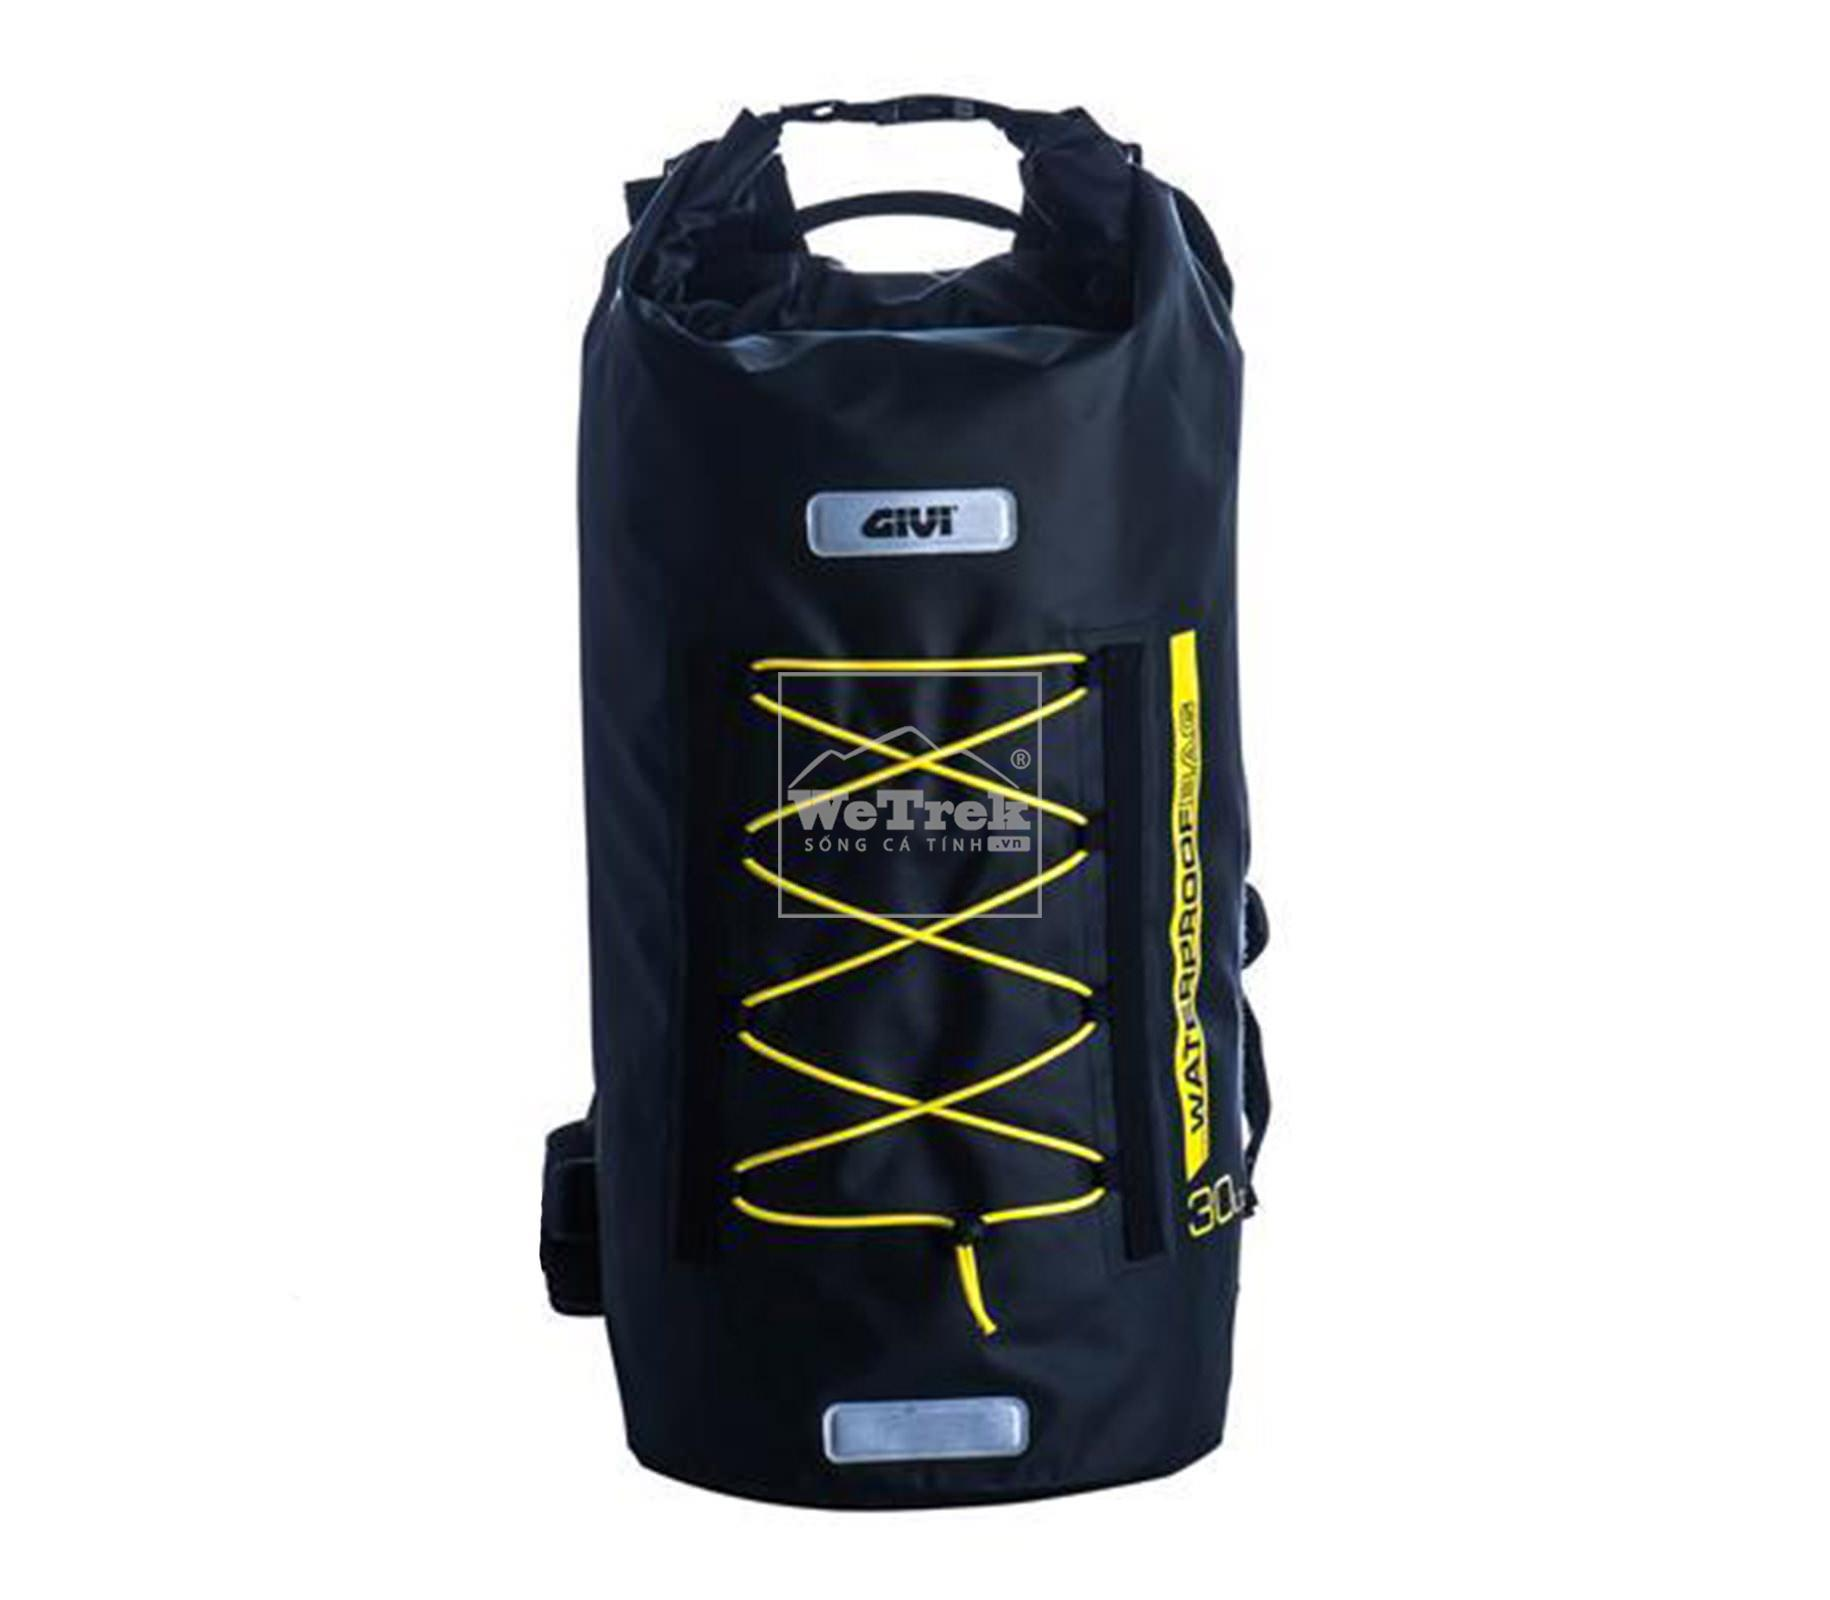 Balo-chong-nuoc-30L-GIVI-Prime-BackPack-PBP01-7812_HasThumb.jpg